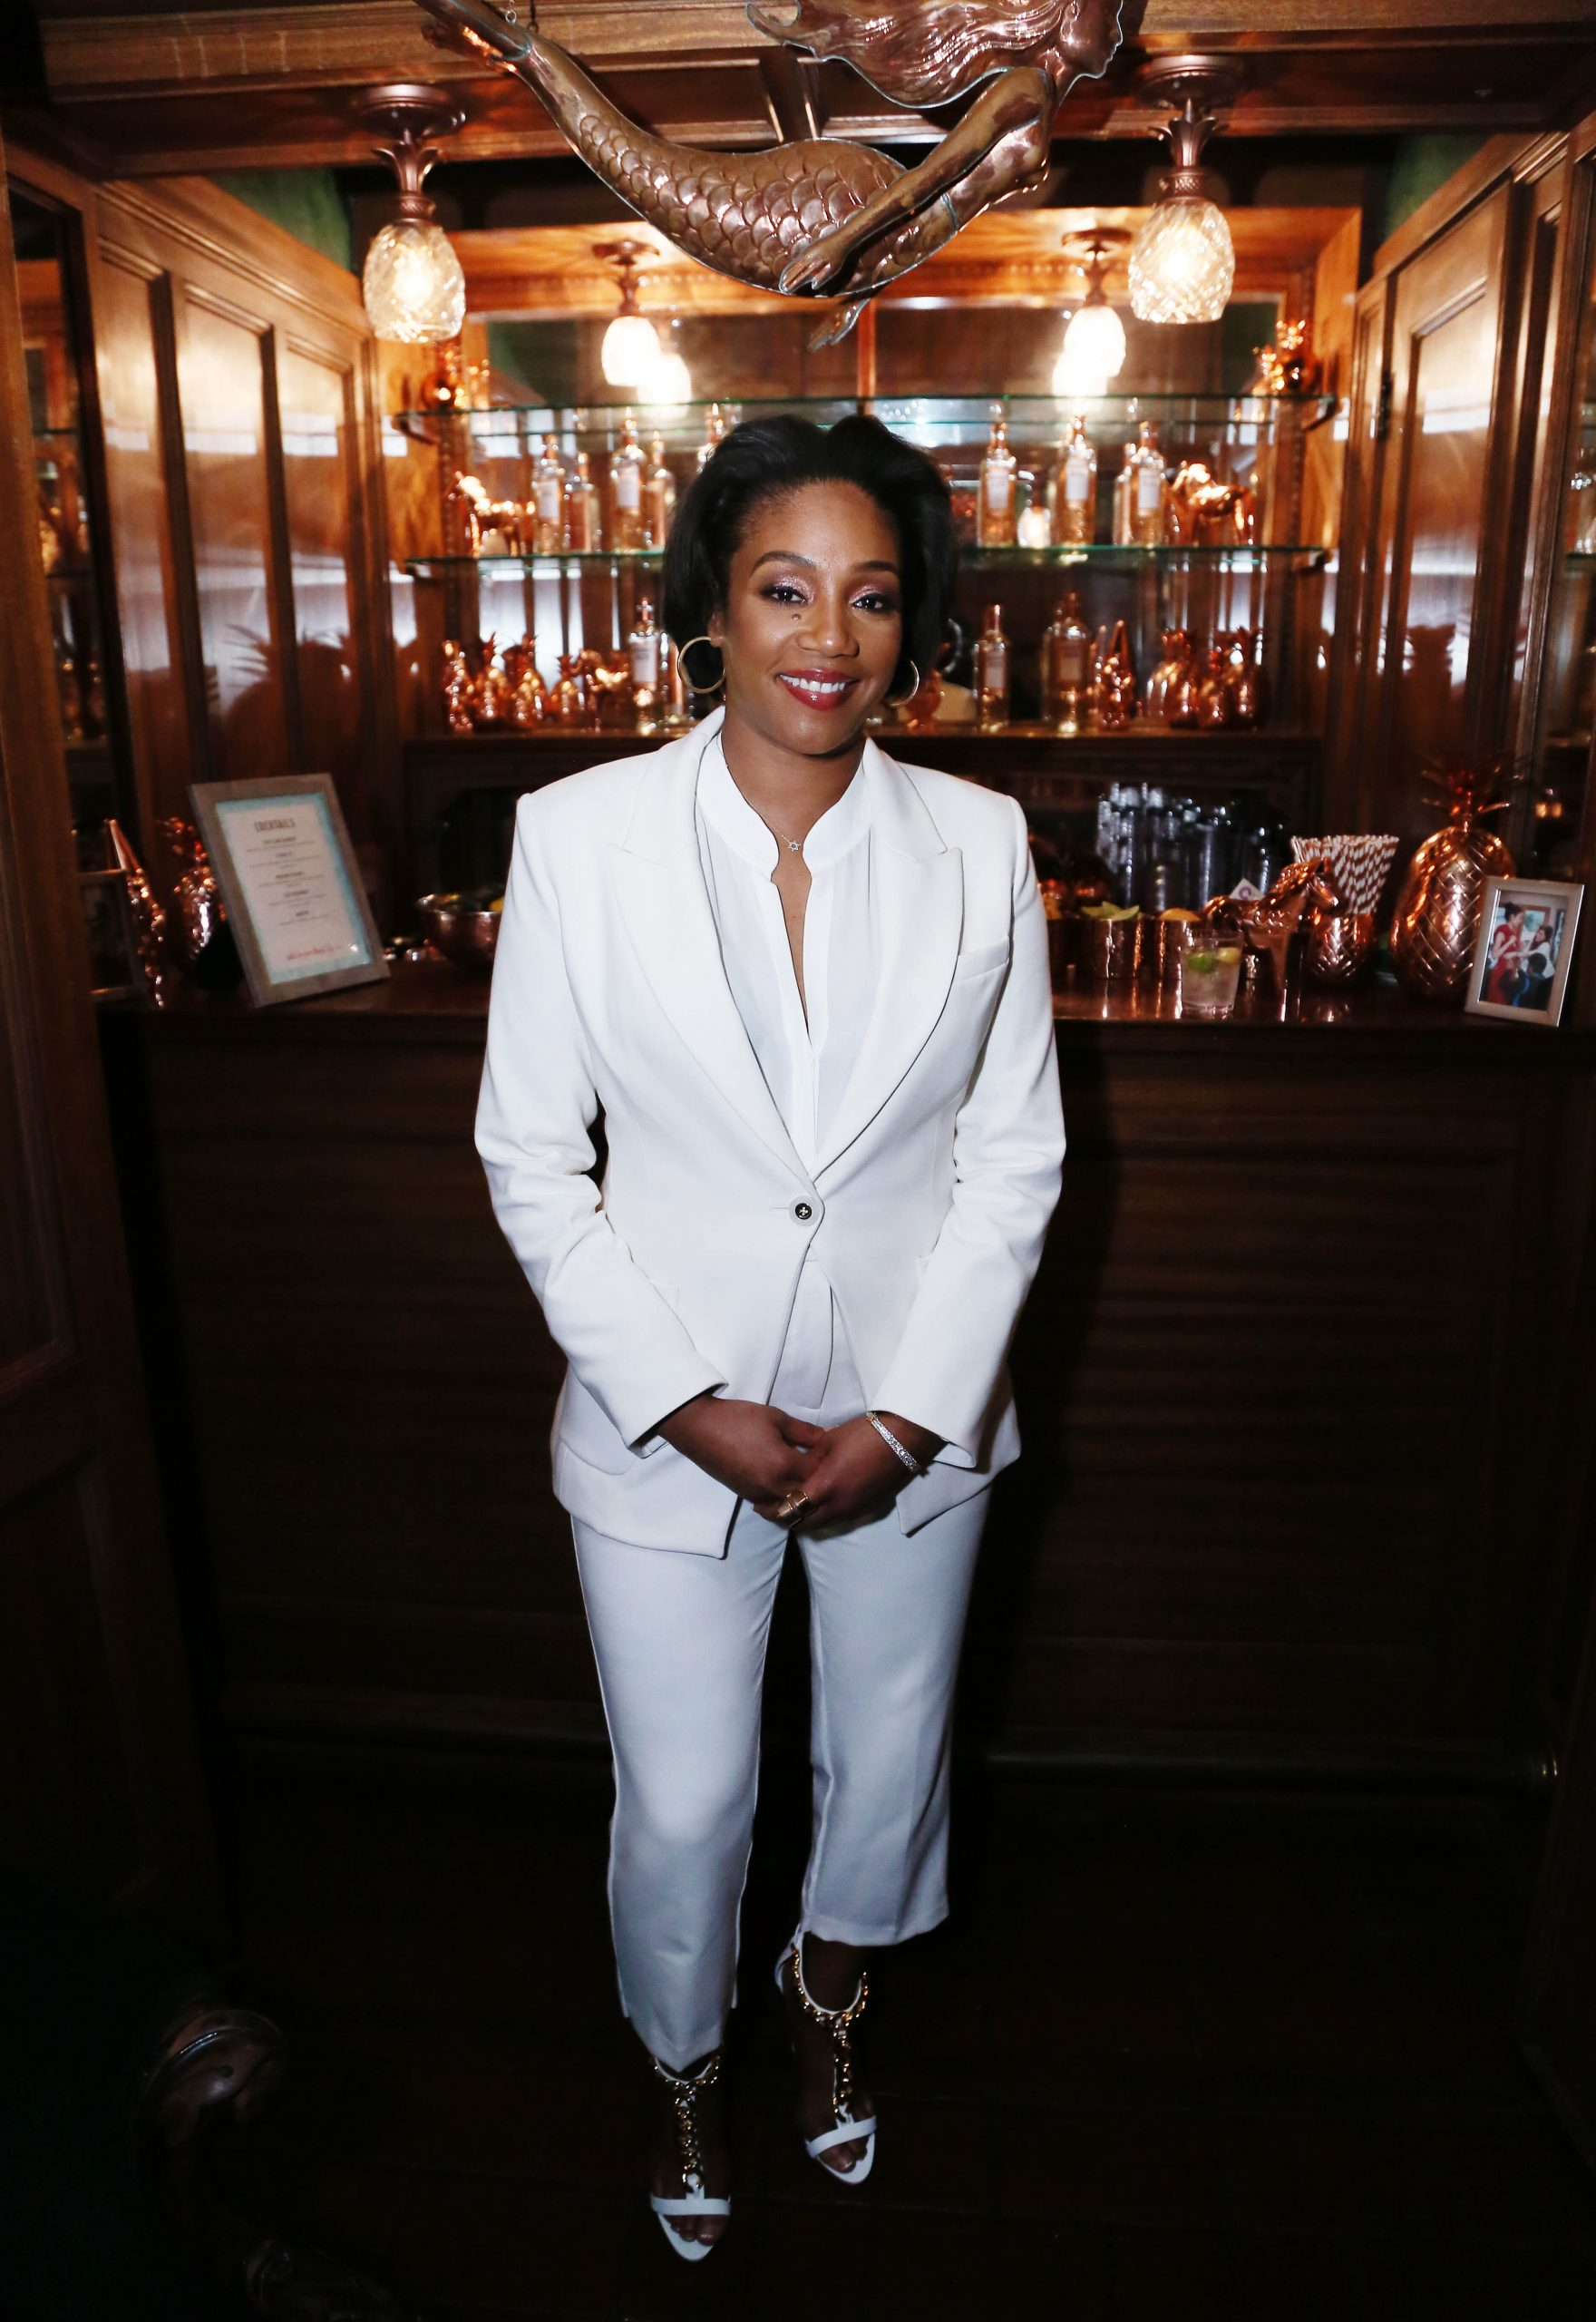 LOS ANGELES, CALIFORNIA - FEBRUARY 06: Tiffany Haddish attends Red Carpet Green Dress at the Private Residence of Jonas Tahlin, CEO of Absolut Elyx on February 06, 2020 in Los Angeles, California. (Photo by Gabriel Olsen/Getty Images for Absolut Elyx)